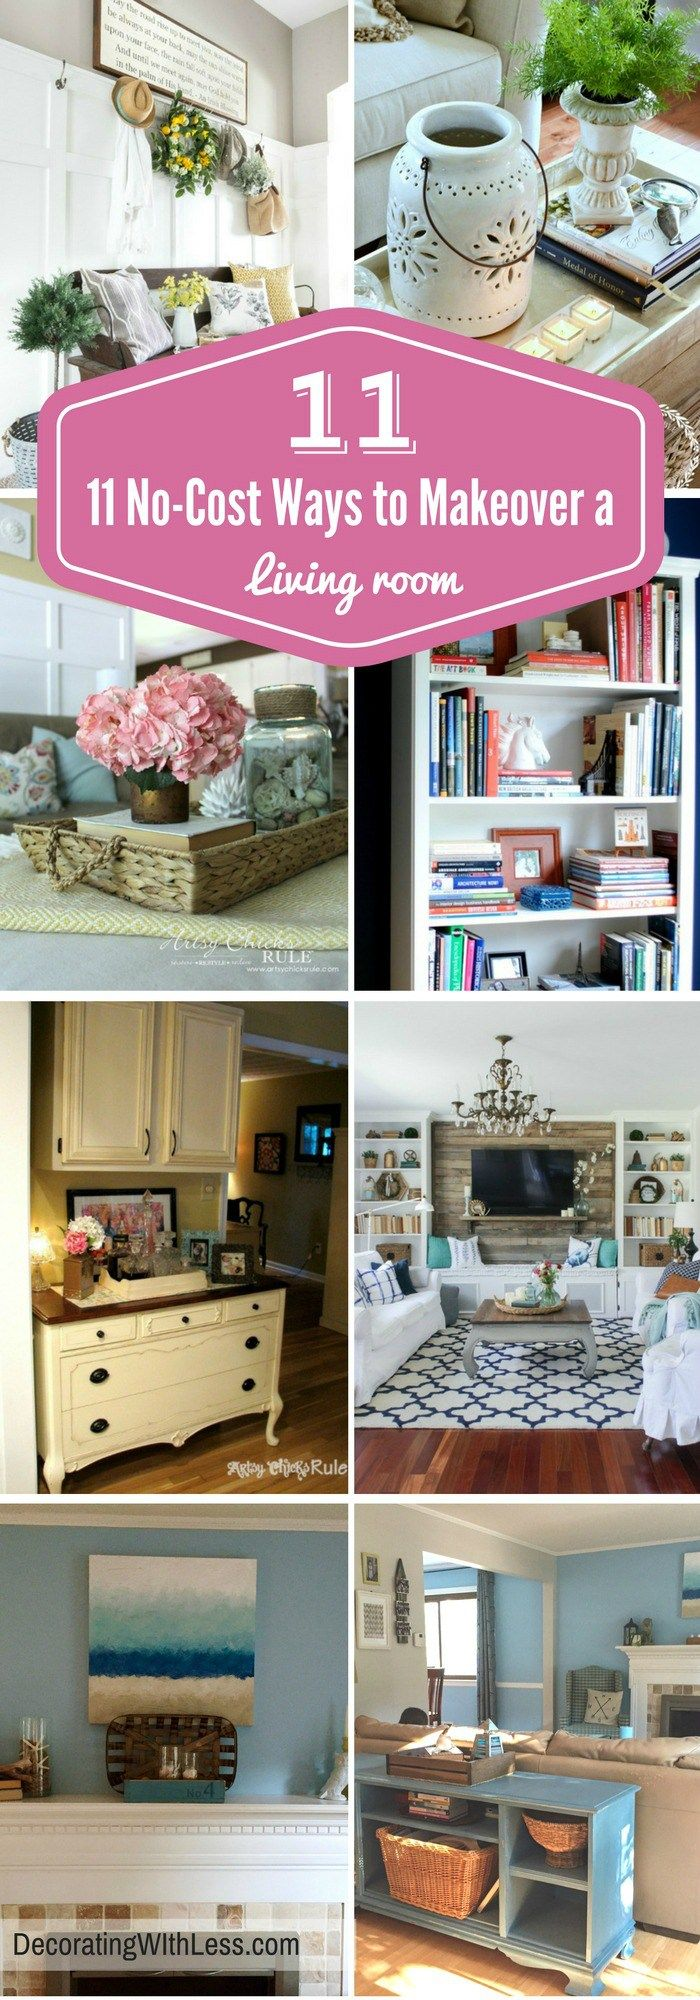 11 No-Cost Ways to Makeover a Living Room - Decorating With Less